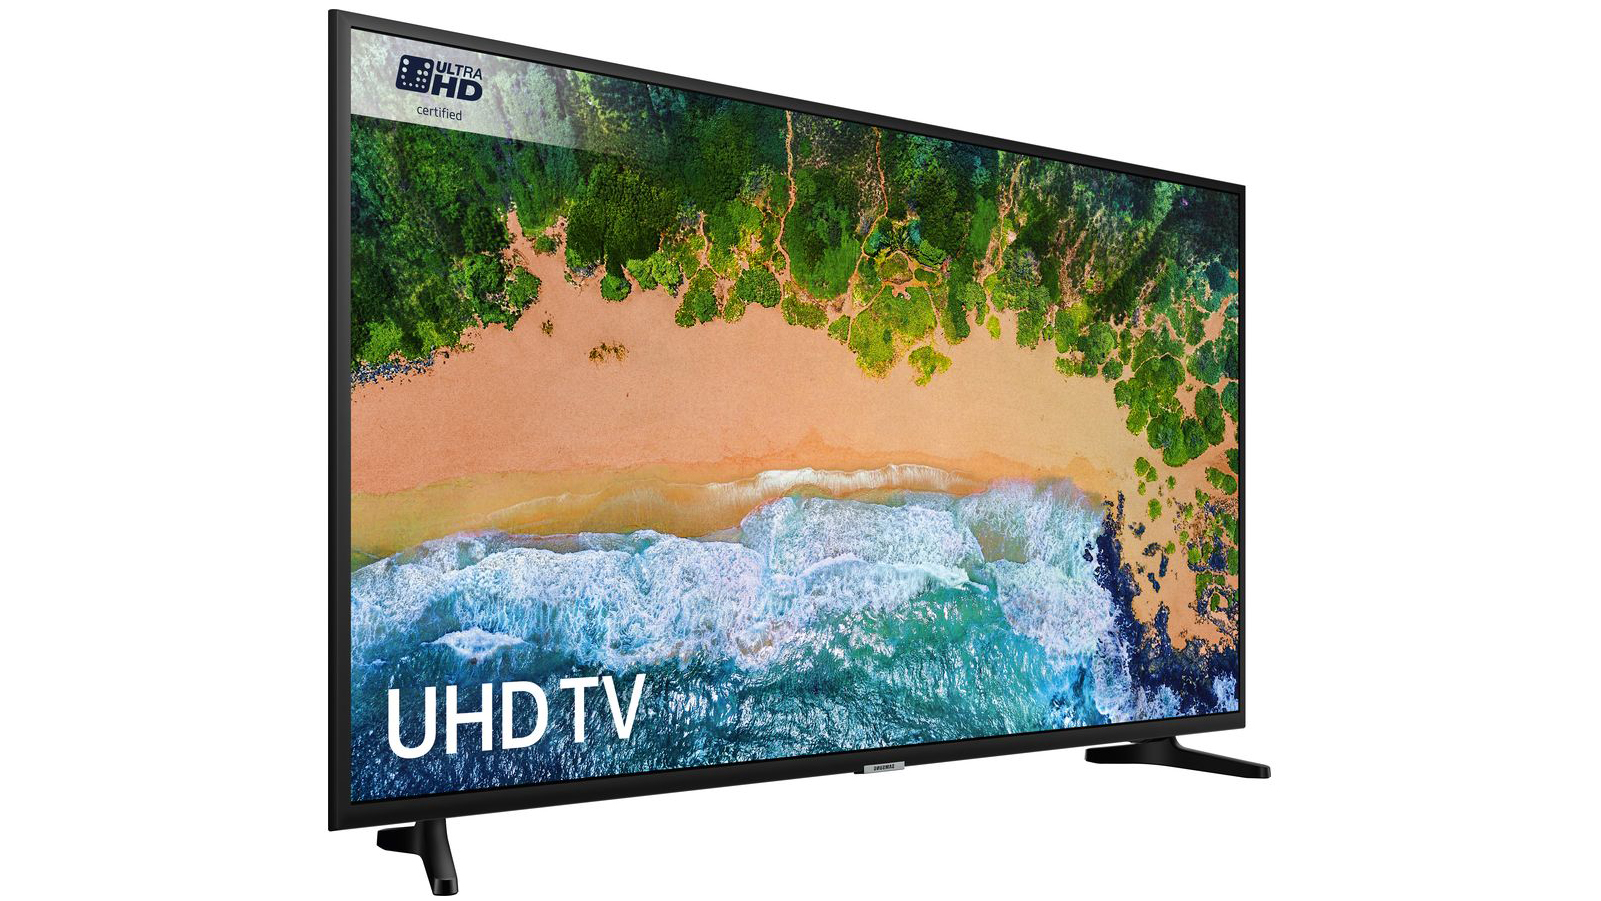 Samsung NU7020: Is this 4K TV deal any good? | What Hi-Fi?